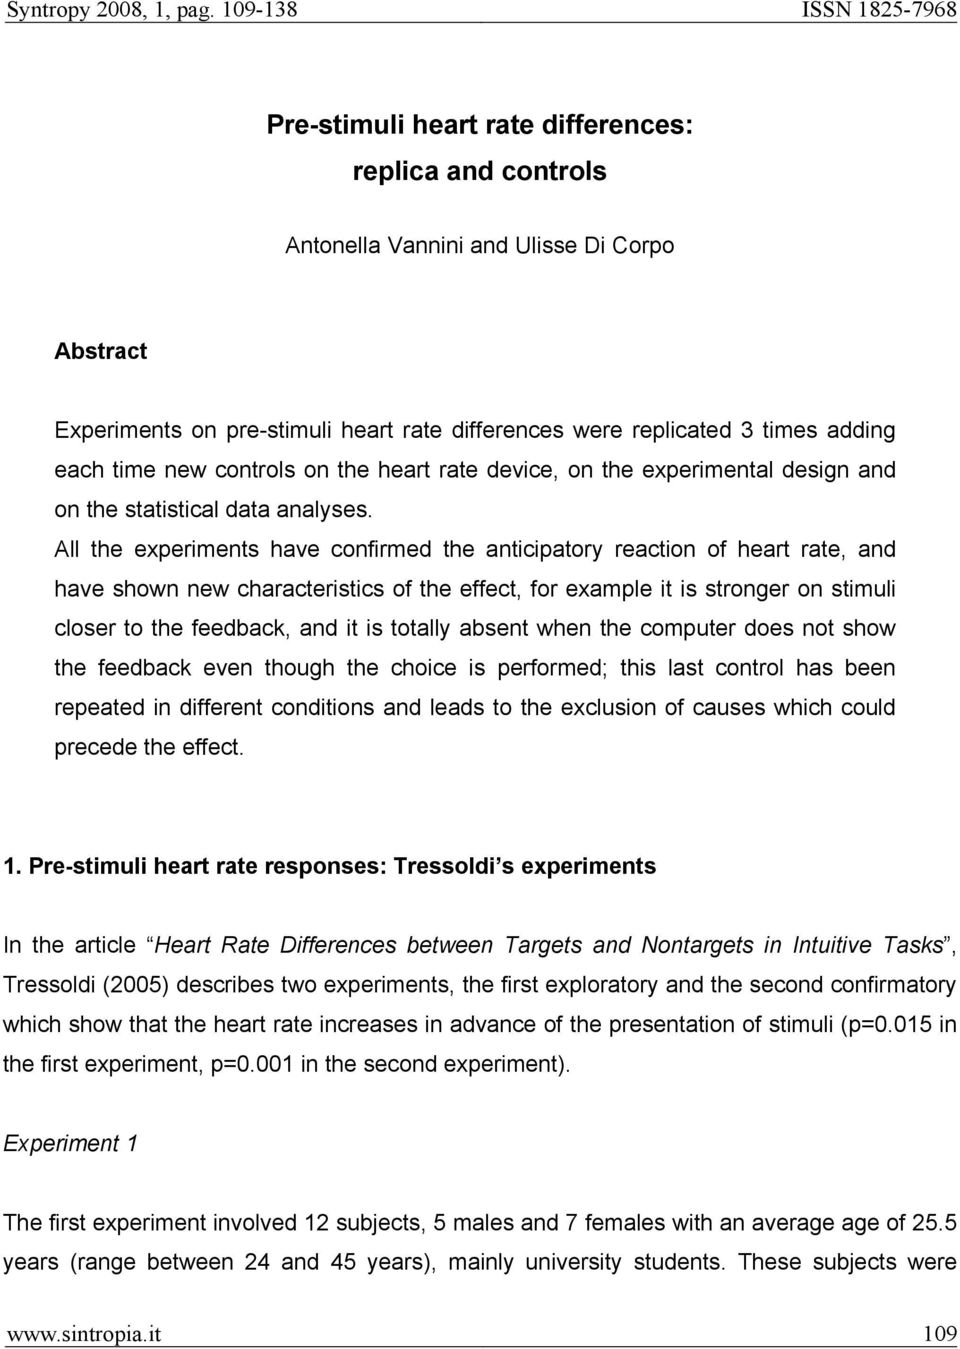 All the experiments have confirmed the anticipatory reaction of heart rate, and have shown new characteristics of the effect, for example it is stronger on stimuli closer to the feedback, and it is